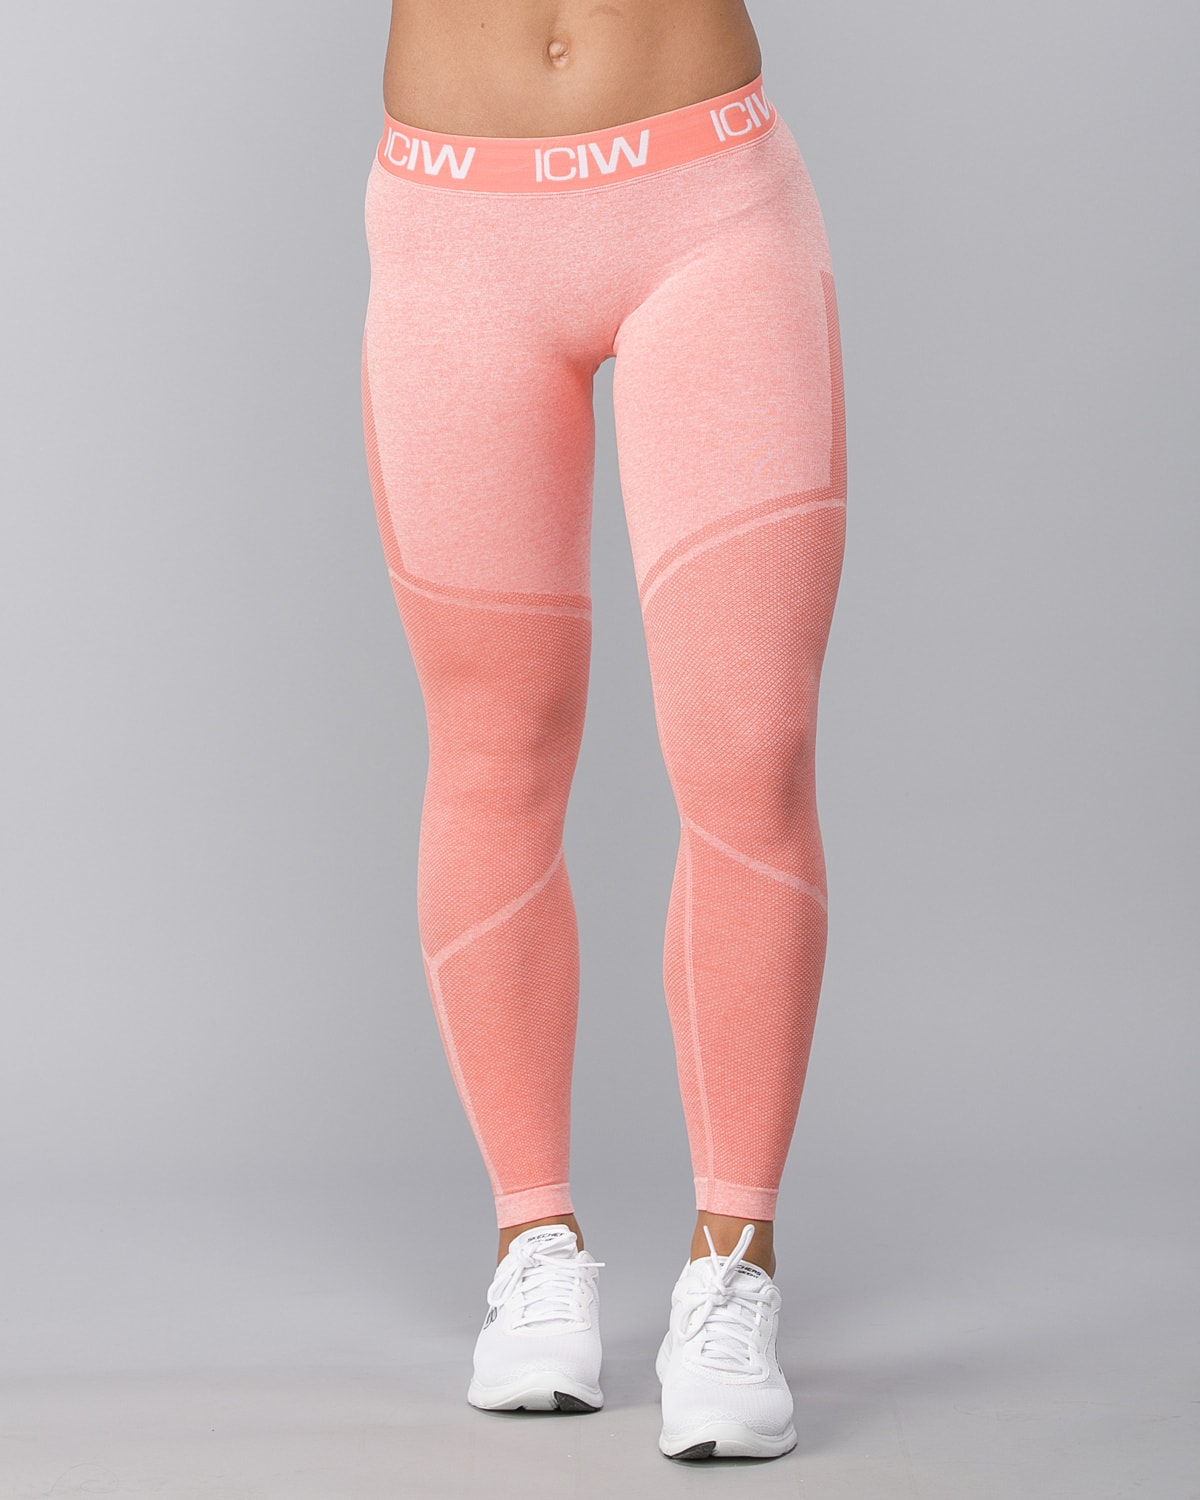 Icaniwill-Seamless Tights–Peach